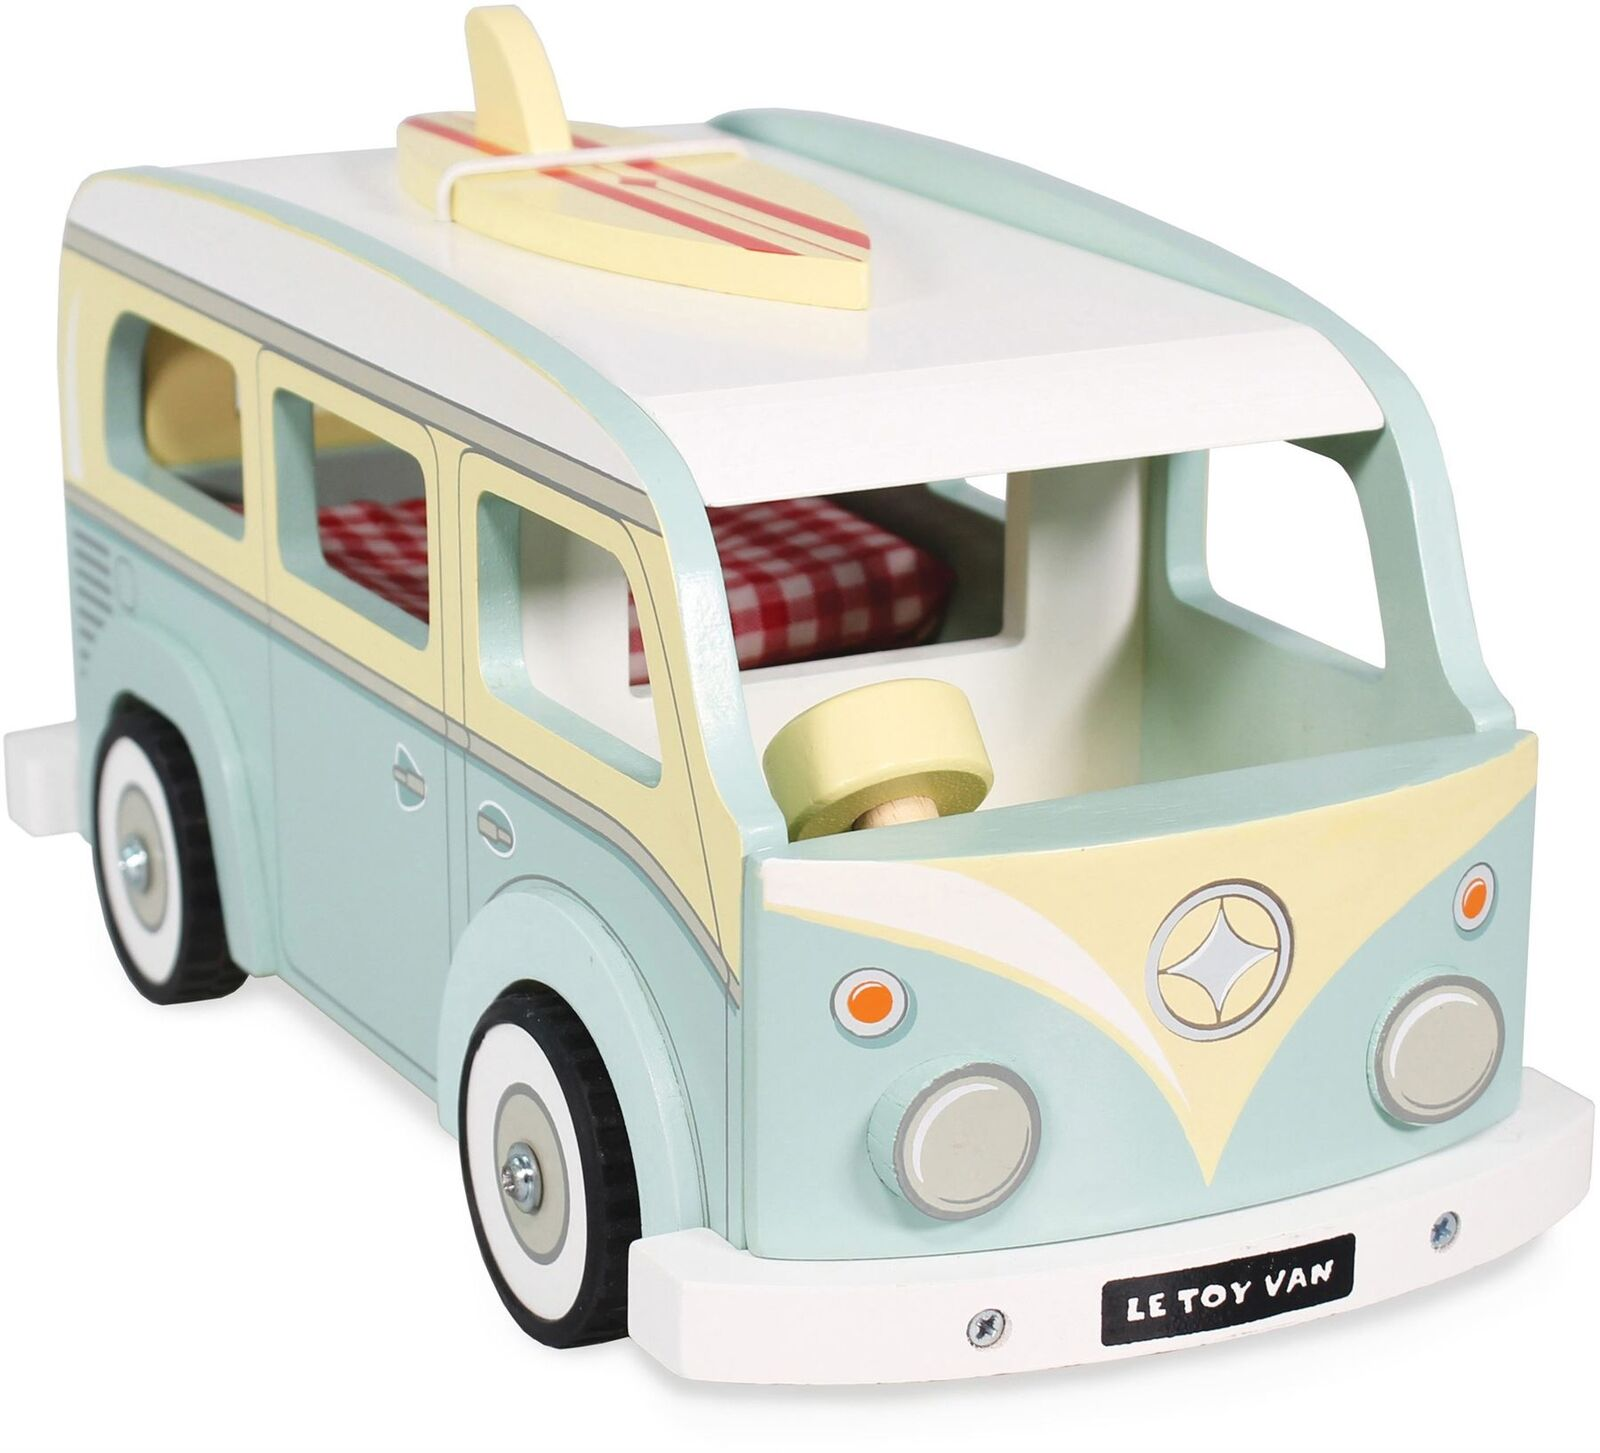 Le Toy Van TRADITIONAL TOYS CAMPER VAN Creative Pre-School Toy BN